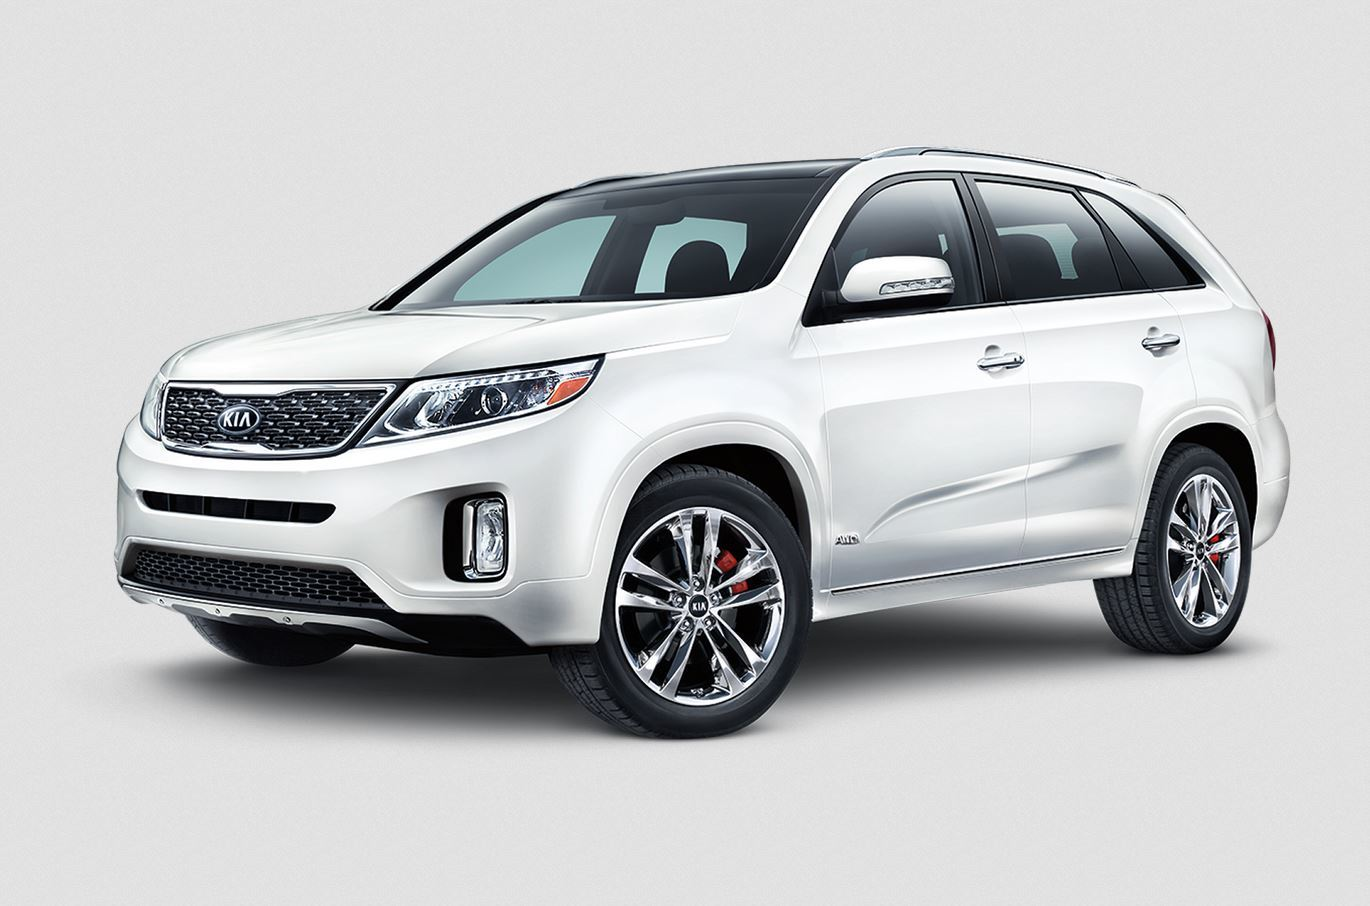 website new dealership in news specials offers paper lease ny kia cooper htm yorkville